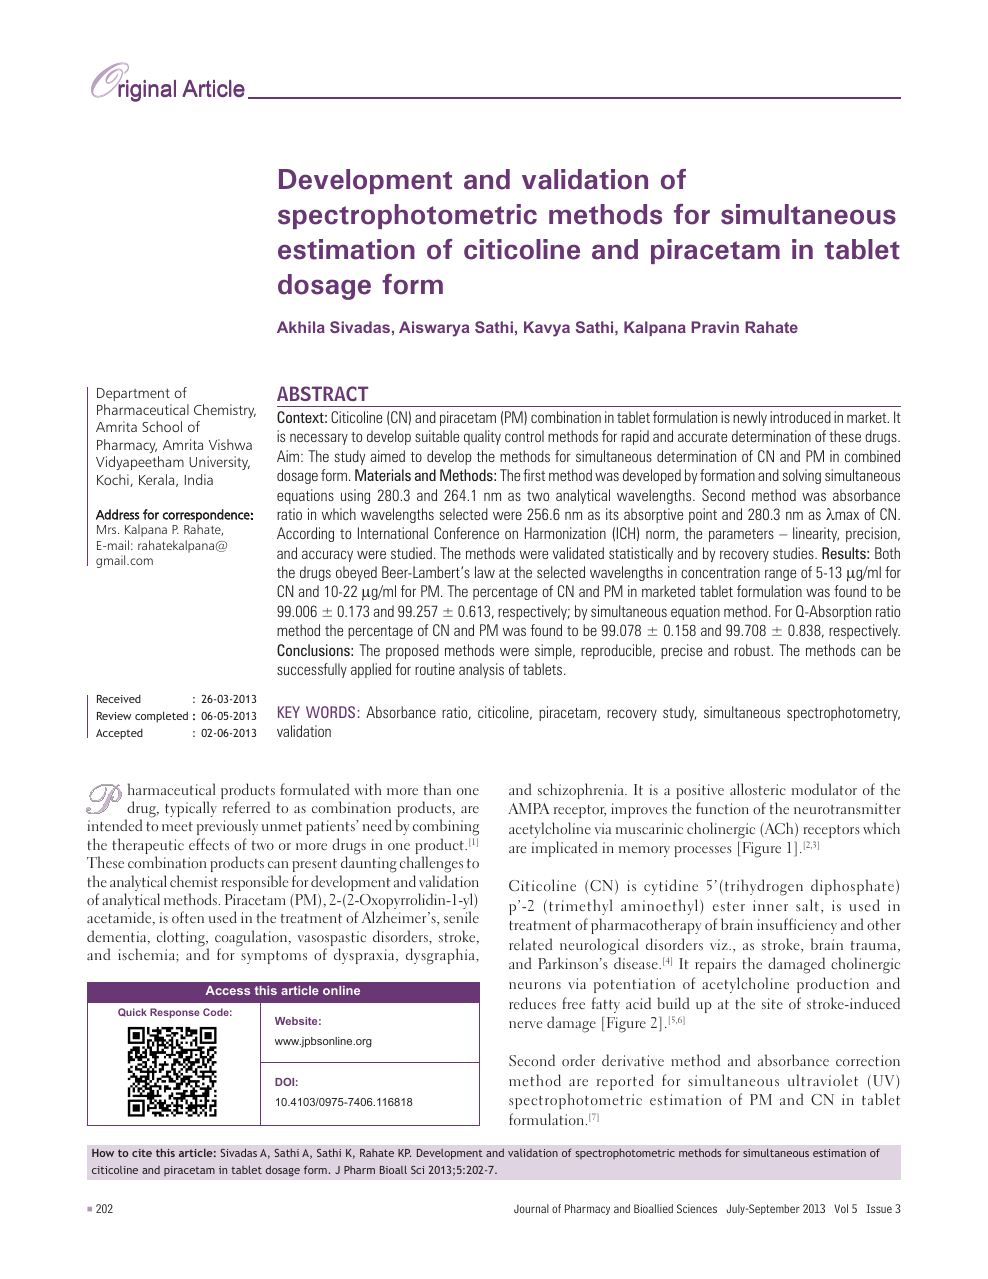 Development and validation of spectrophotometric methods for